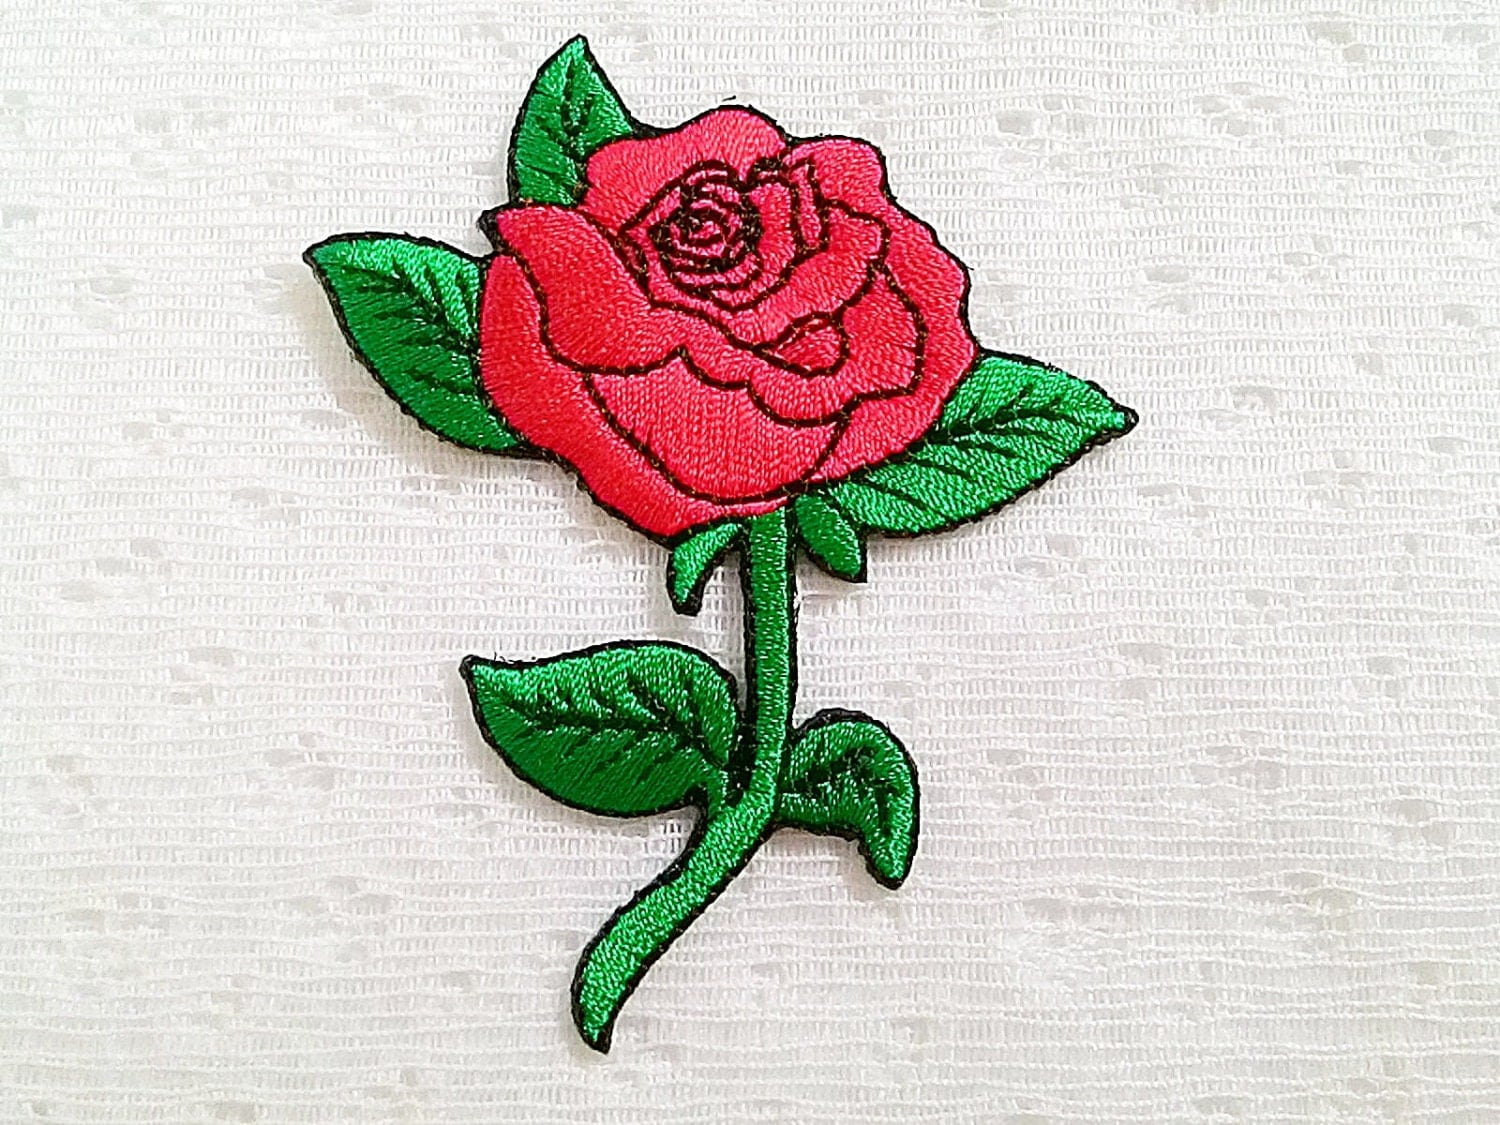 Red rose flower new sew iron on patch embroidered by